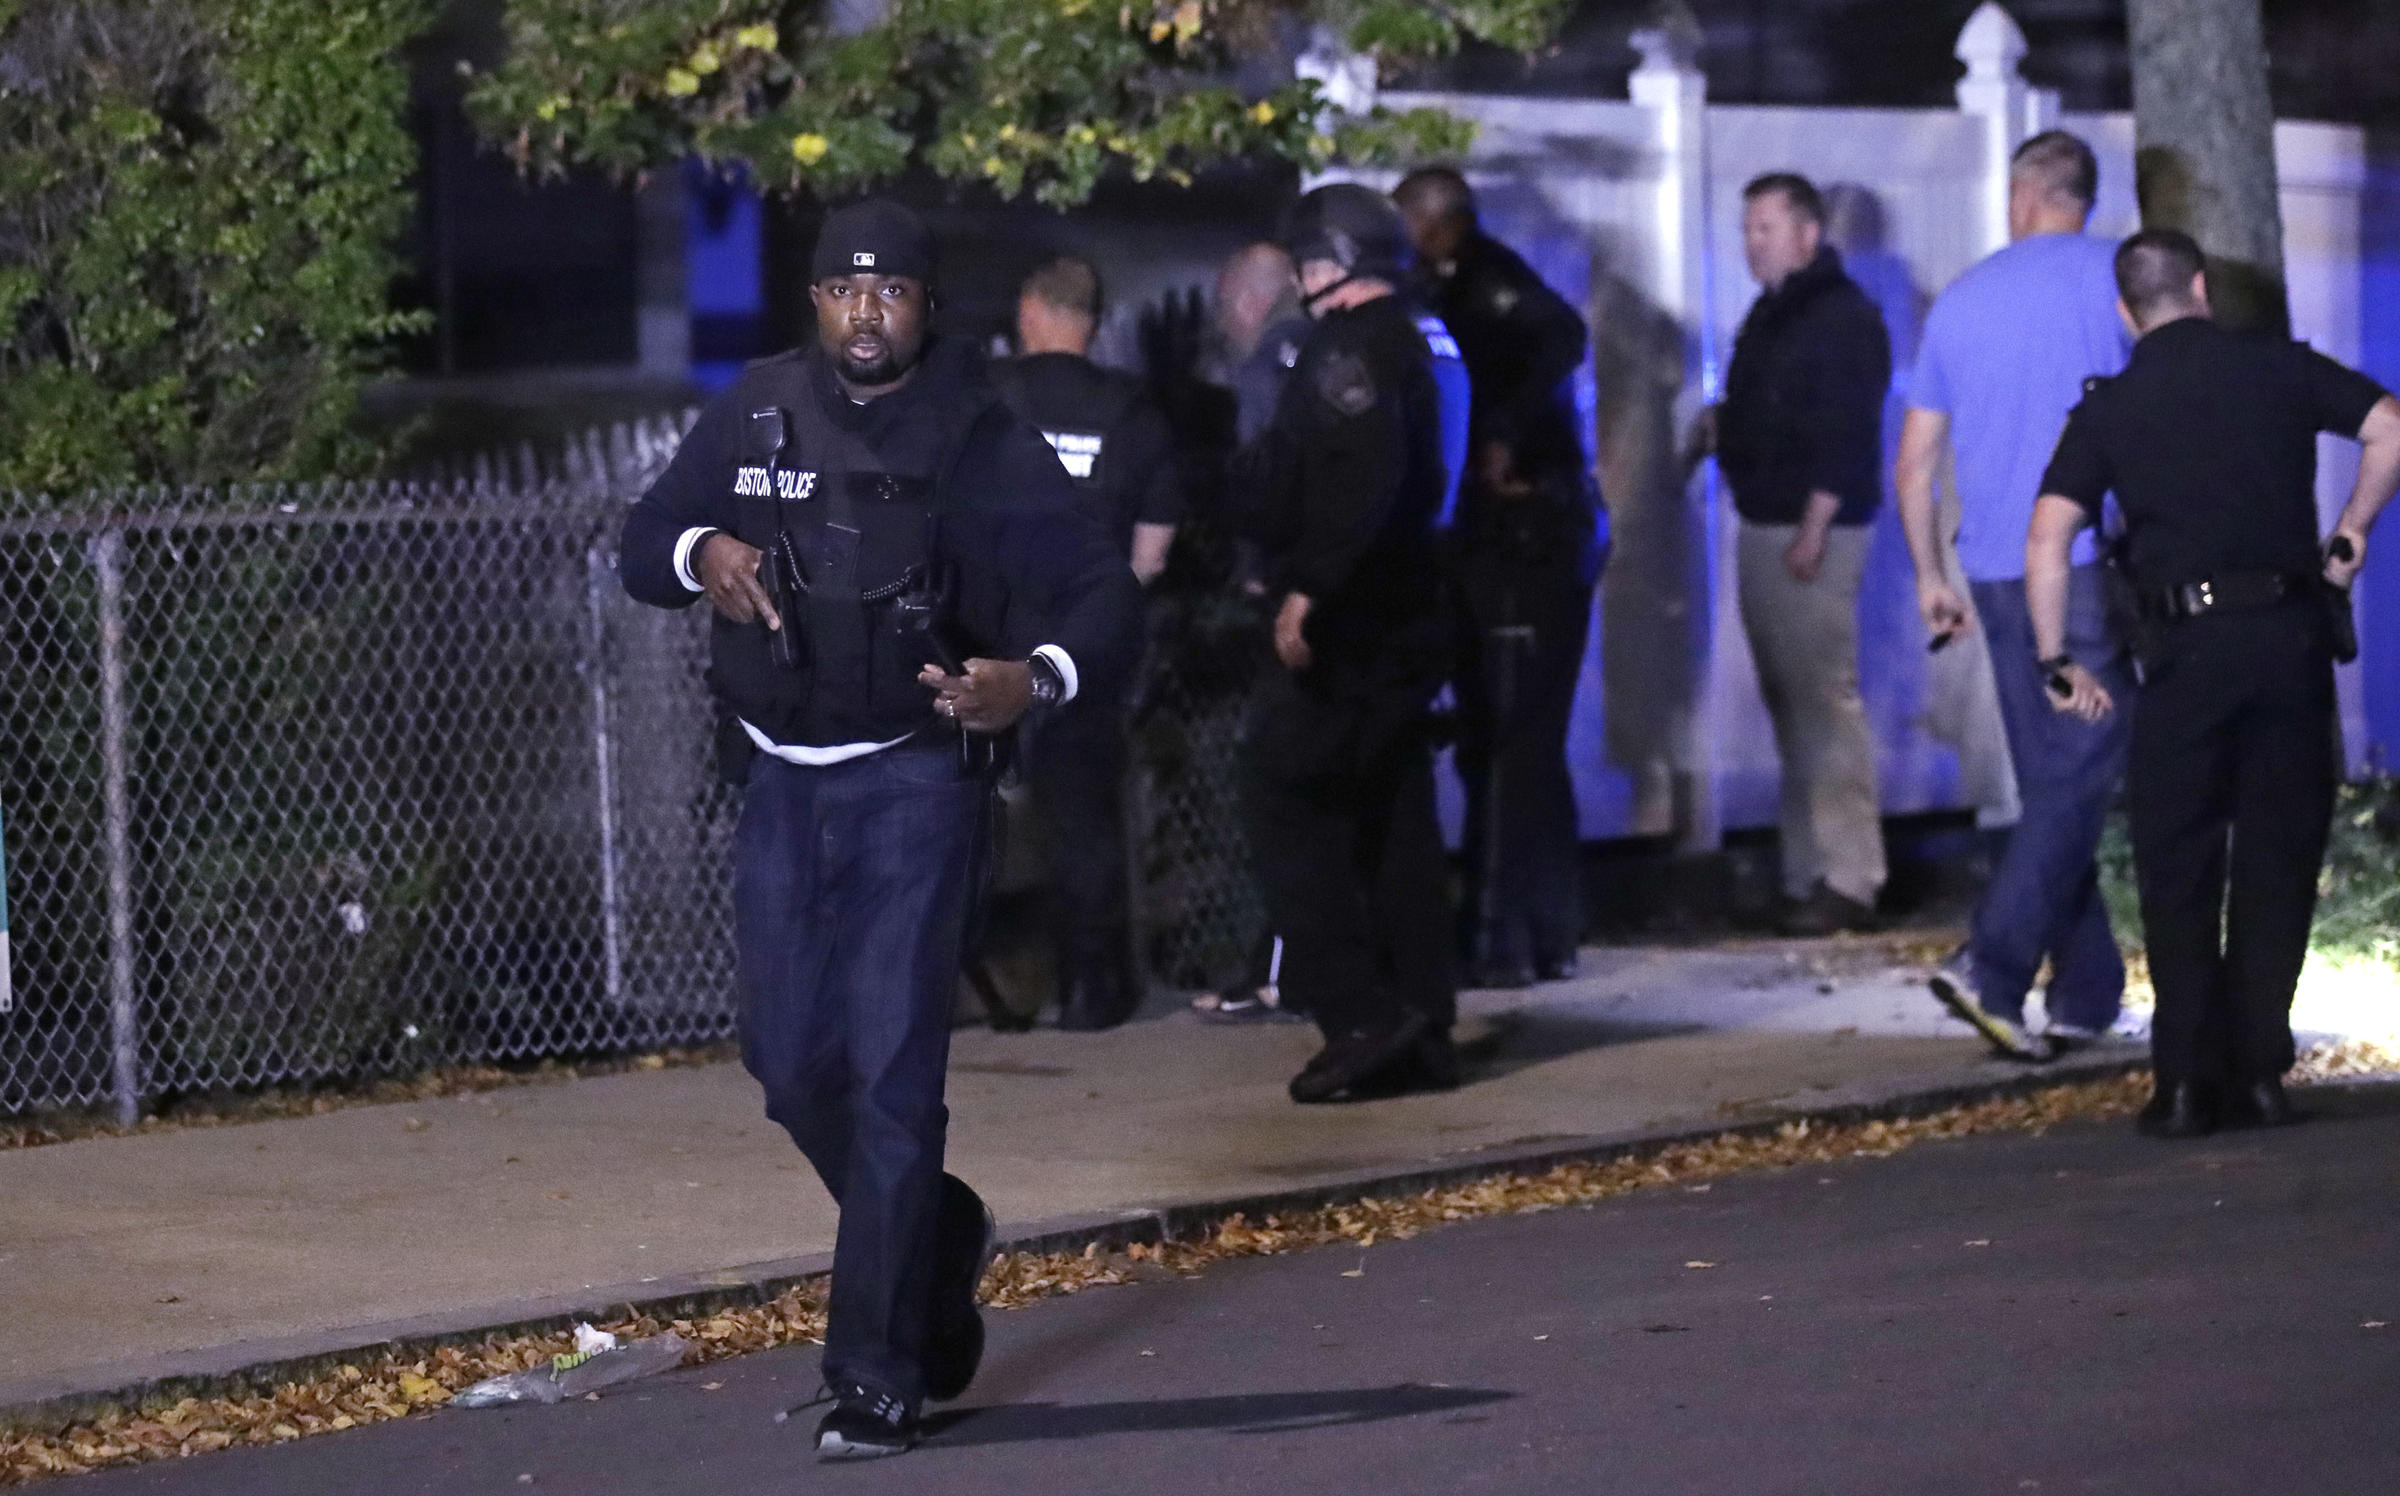 Two officers injured in shooting, suspect dead